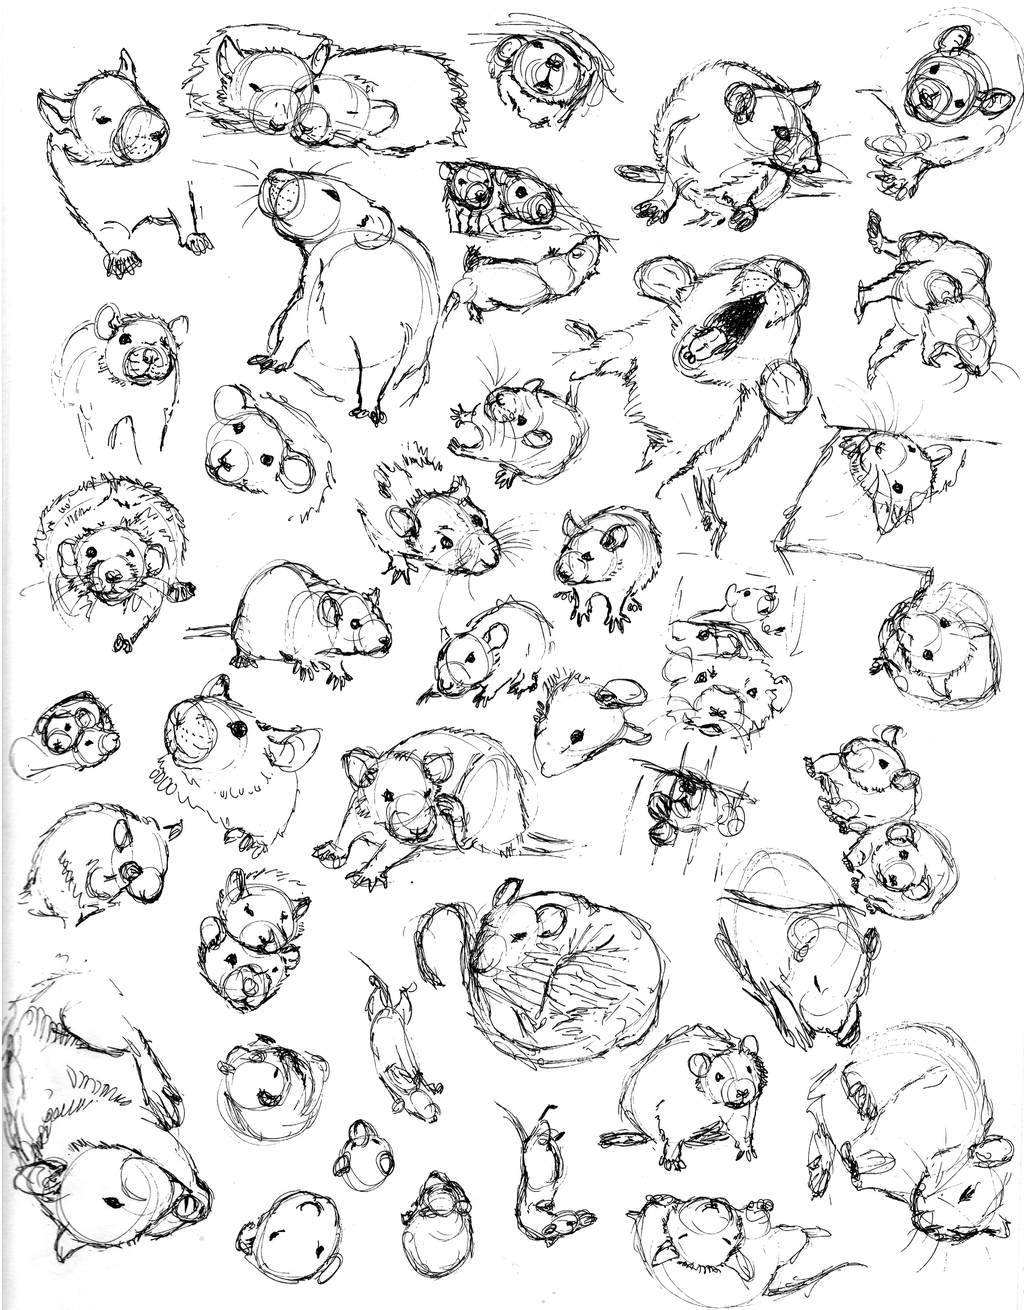 Drawn rat sketch By nEVEr Pictures) a Sketch